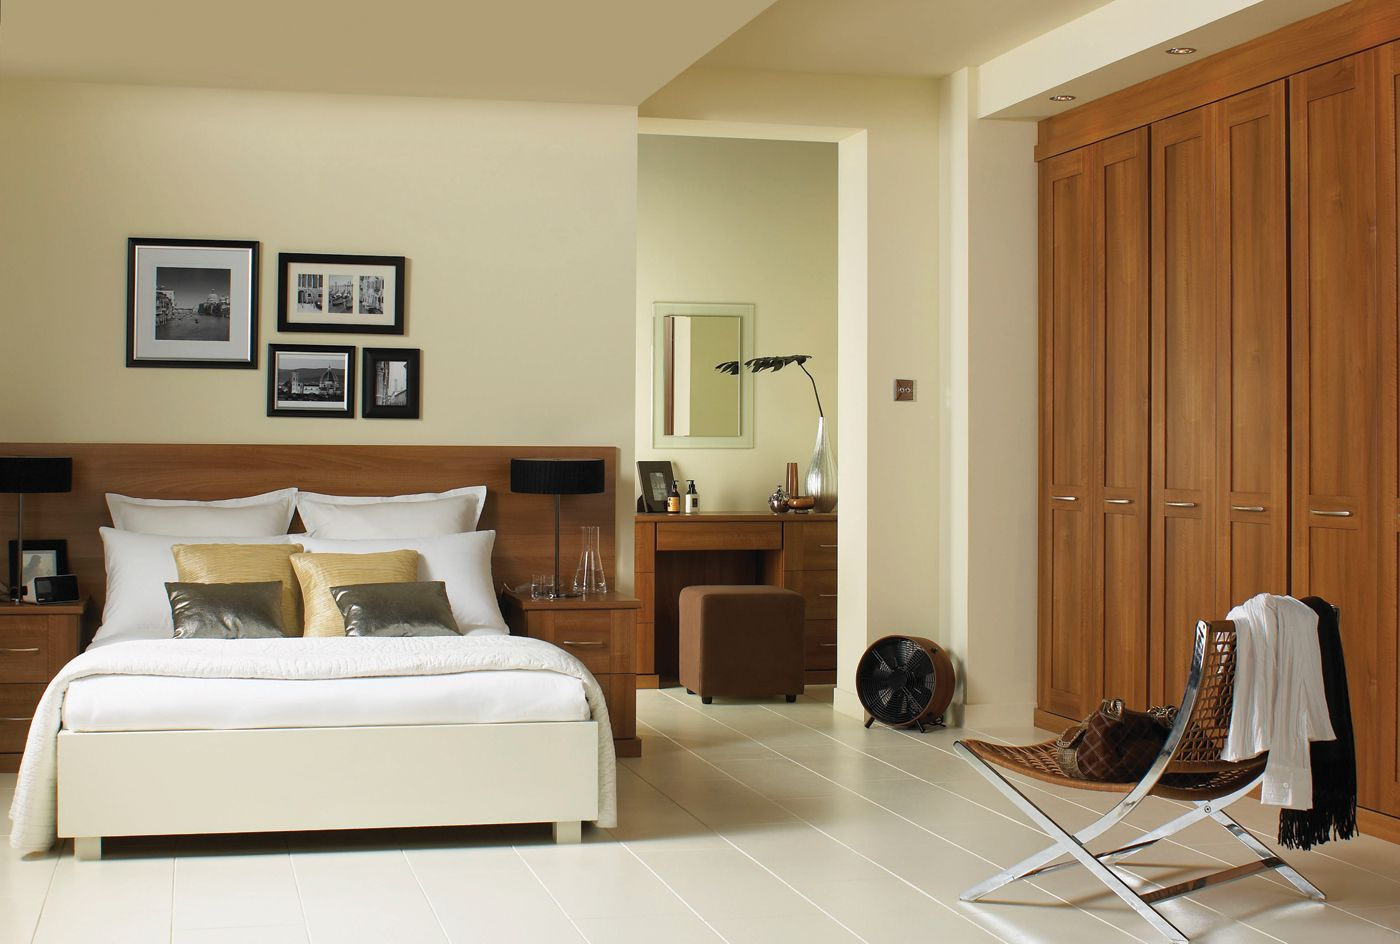 New England Bedroom Furniture & Walnut Wardrobes From Sharps ...